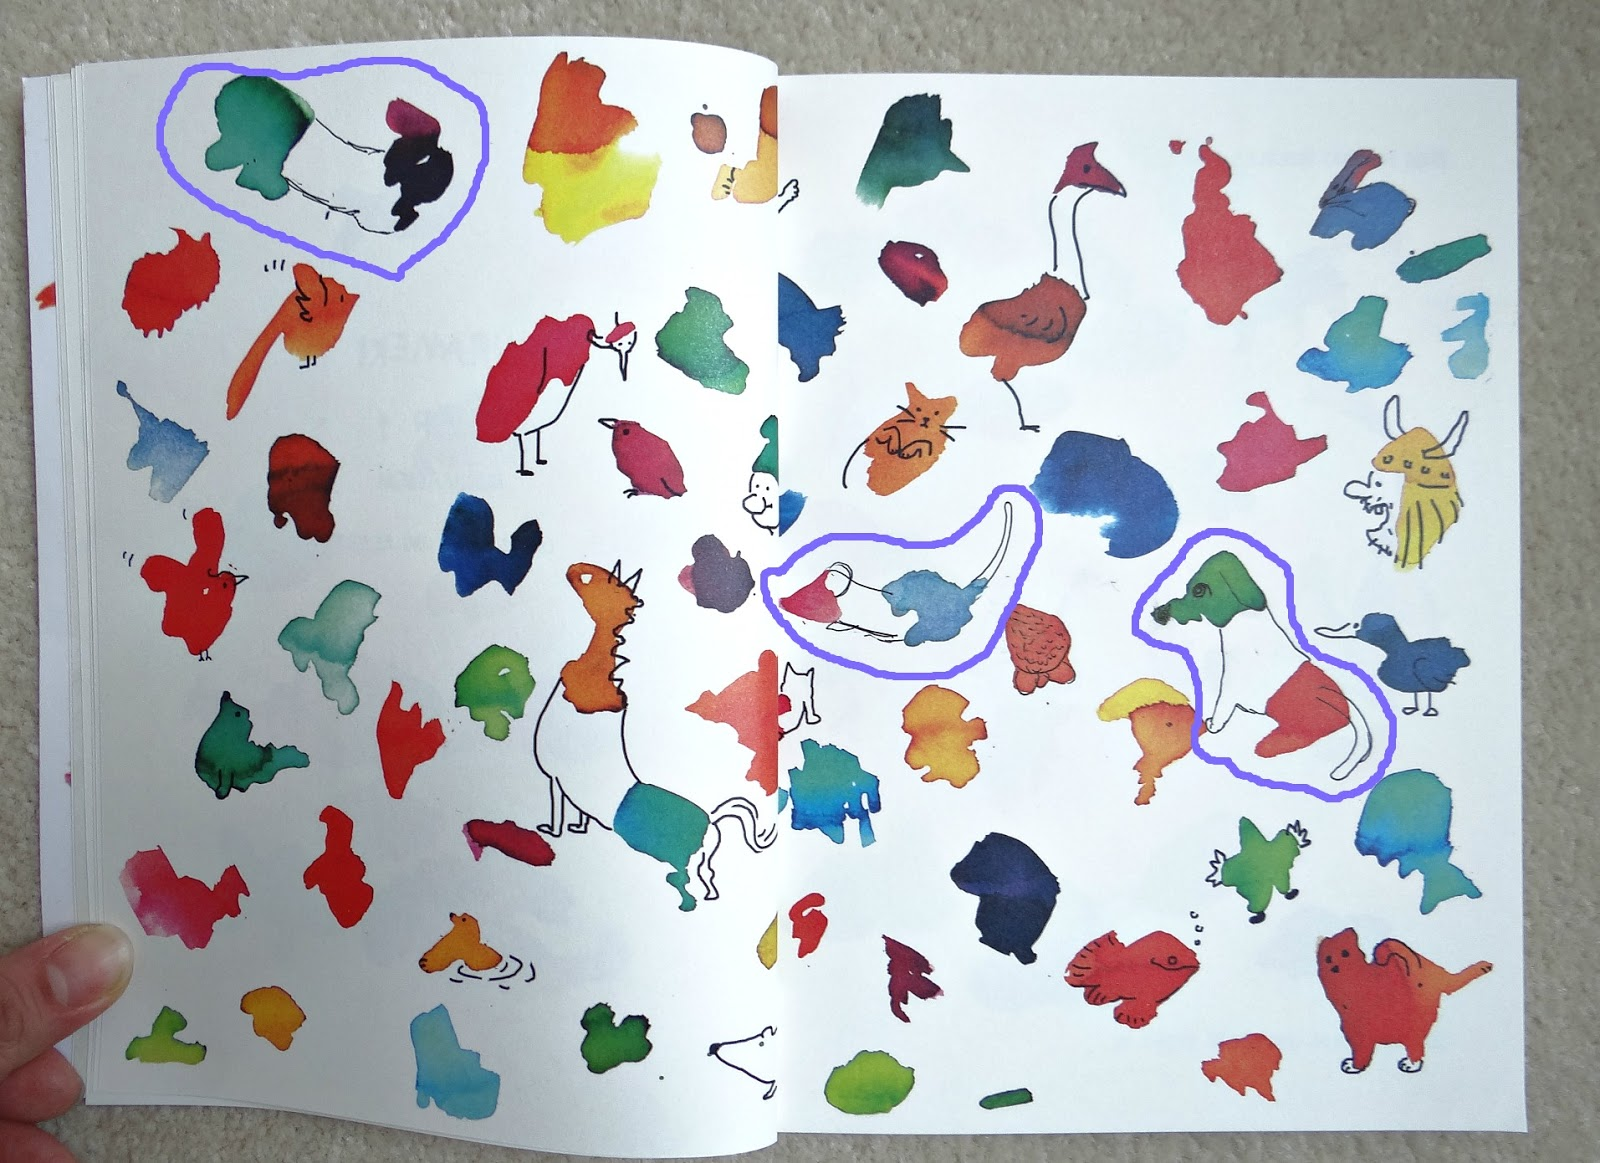 Hirameki Drawing Book, Doodling Book, Inkblot drawing